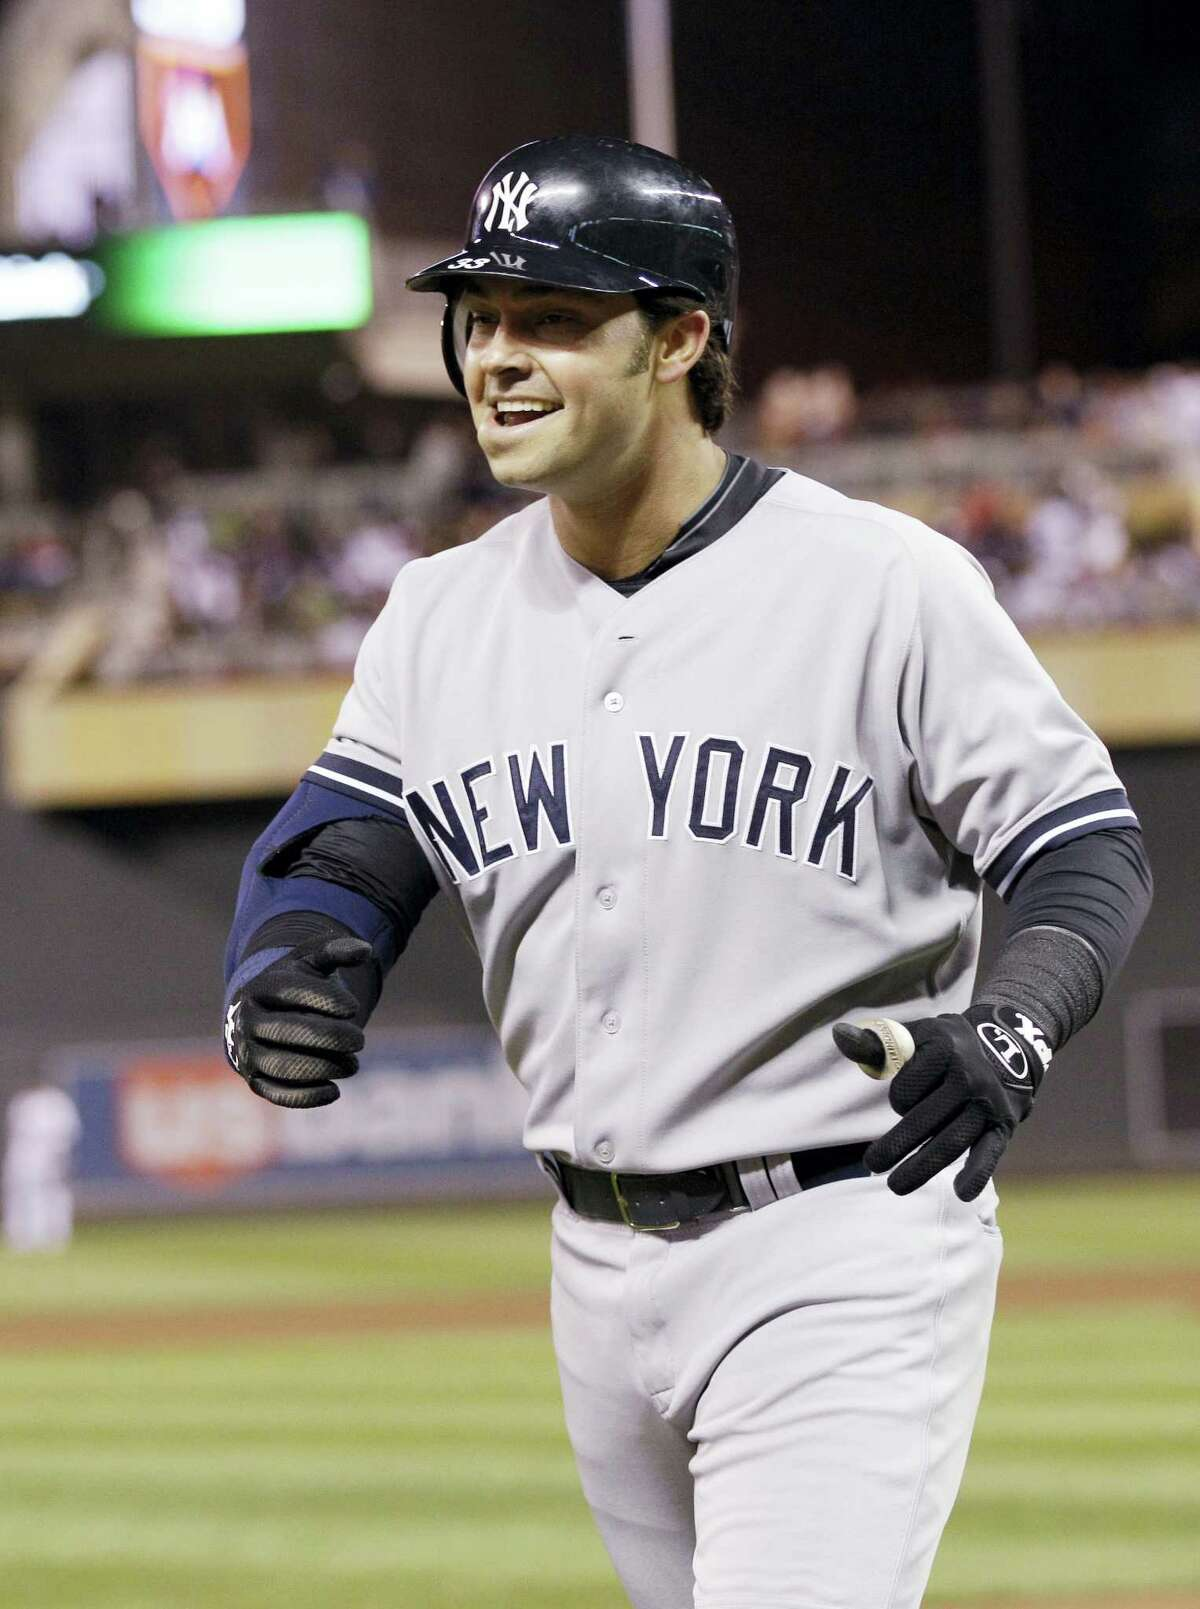 Former Yankee Nick Swisher is joining the group of guest instructors at Yankees' spring training this year.